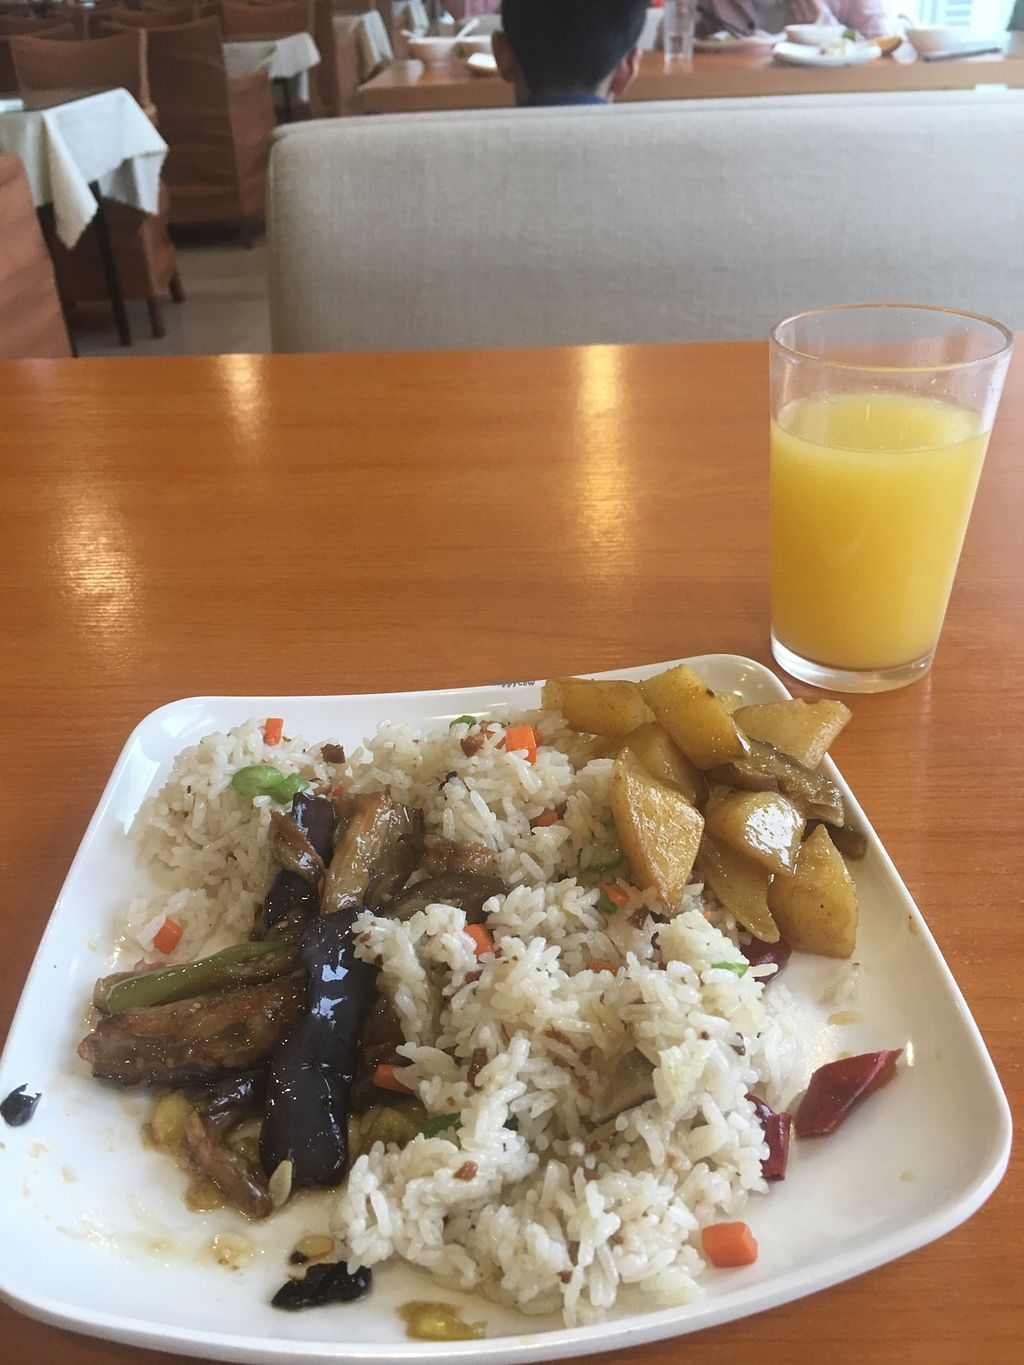 """Photo of Deng Pin Vegetarian  by <a href=""""/members/profile/BobbiChina"""">BobbiChina</a> <br/>Veggie fried rice, fried without egg, in sesame oil. An eggplant and asparagus dish and yummy potatoes! <br/> April 7, 2018  - <a href='/contact/abuse/image/18378/381896'>Report</a>"""